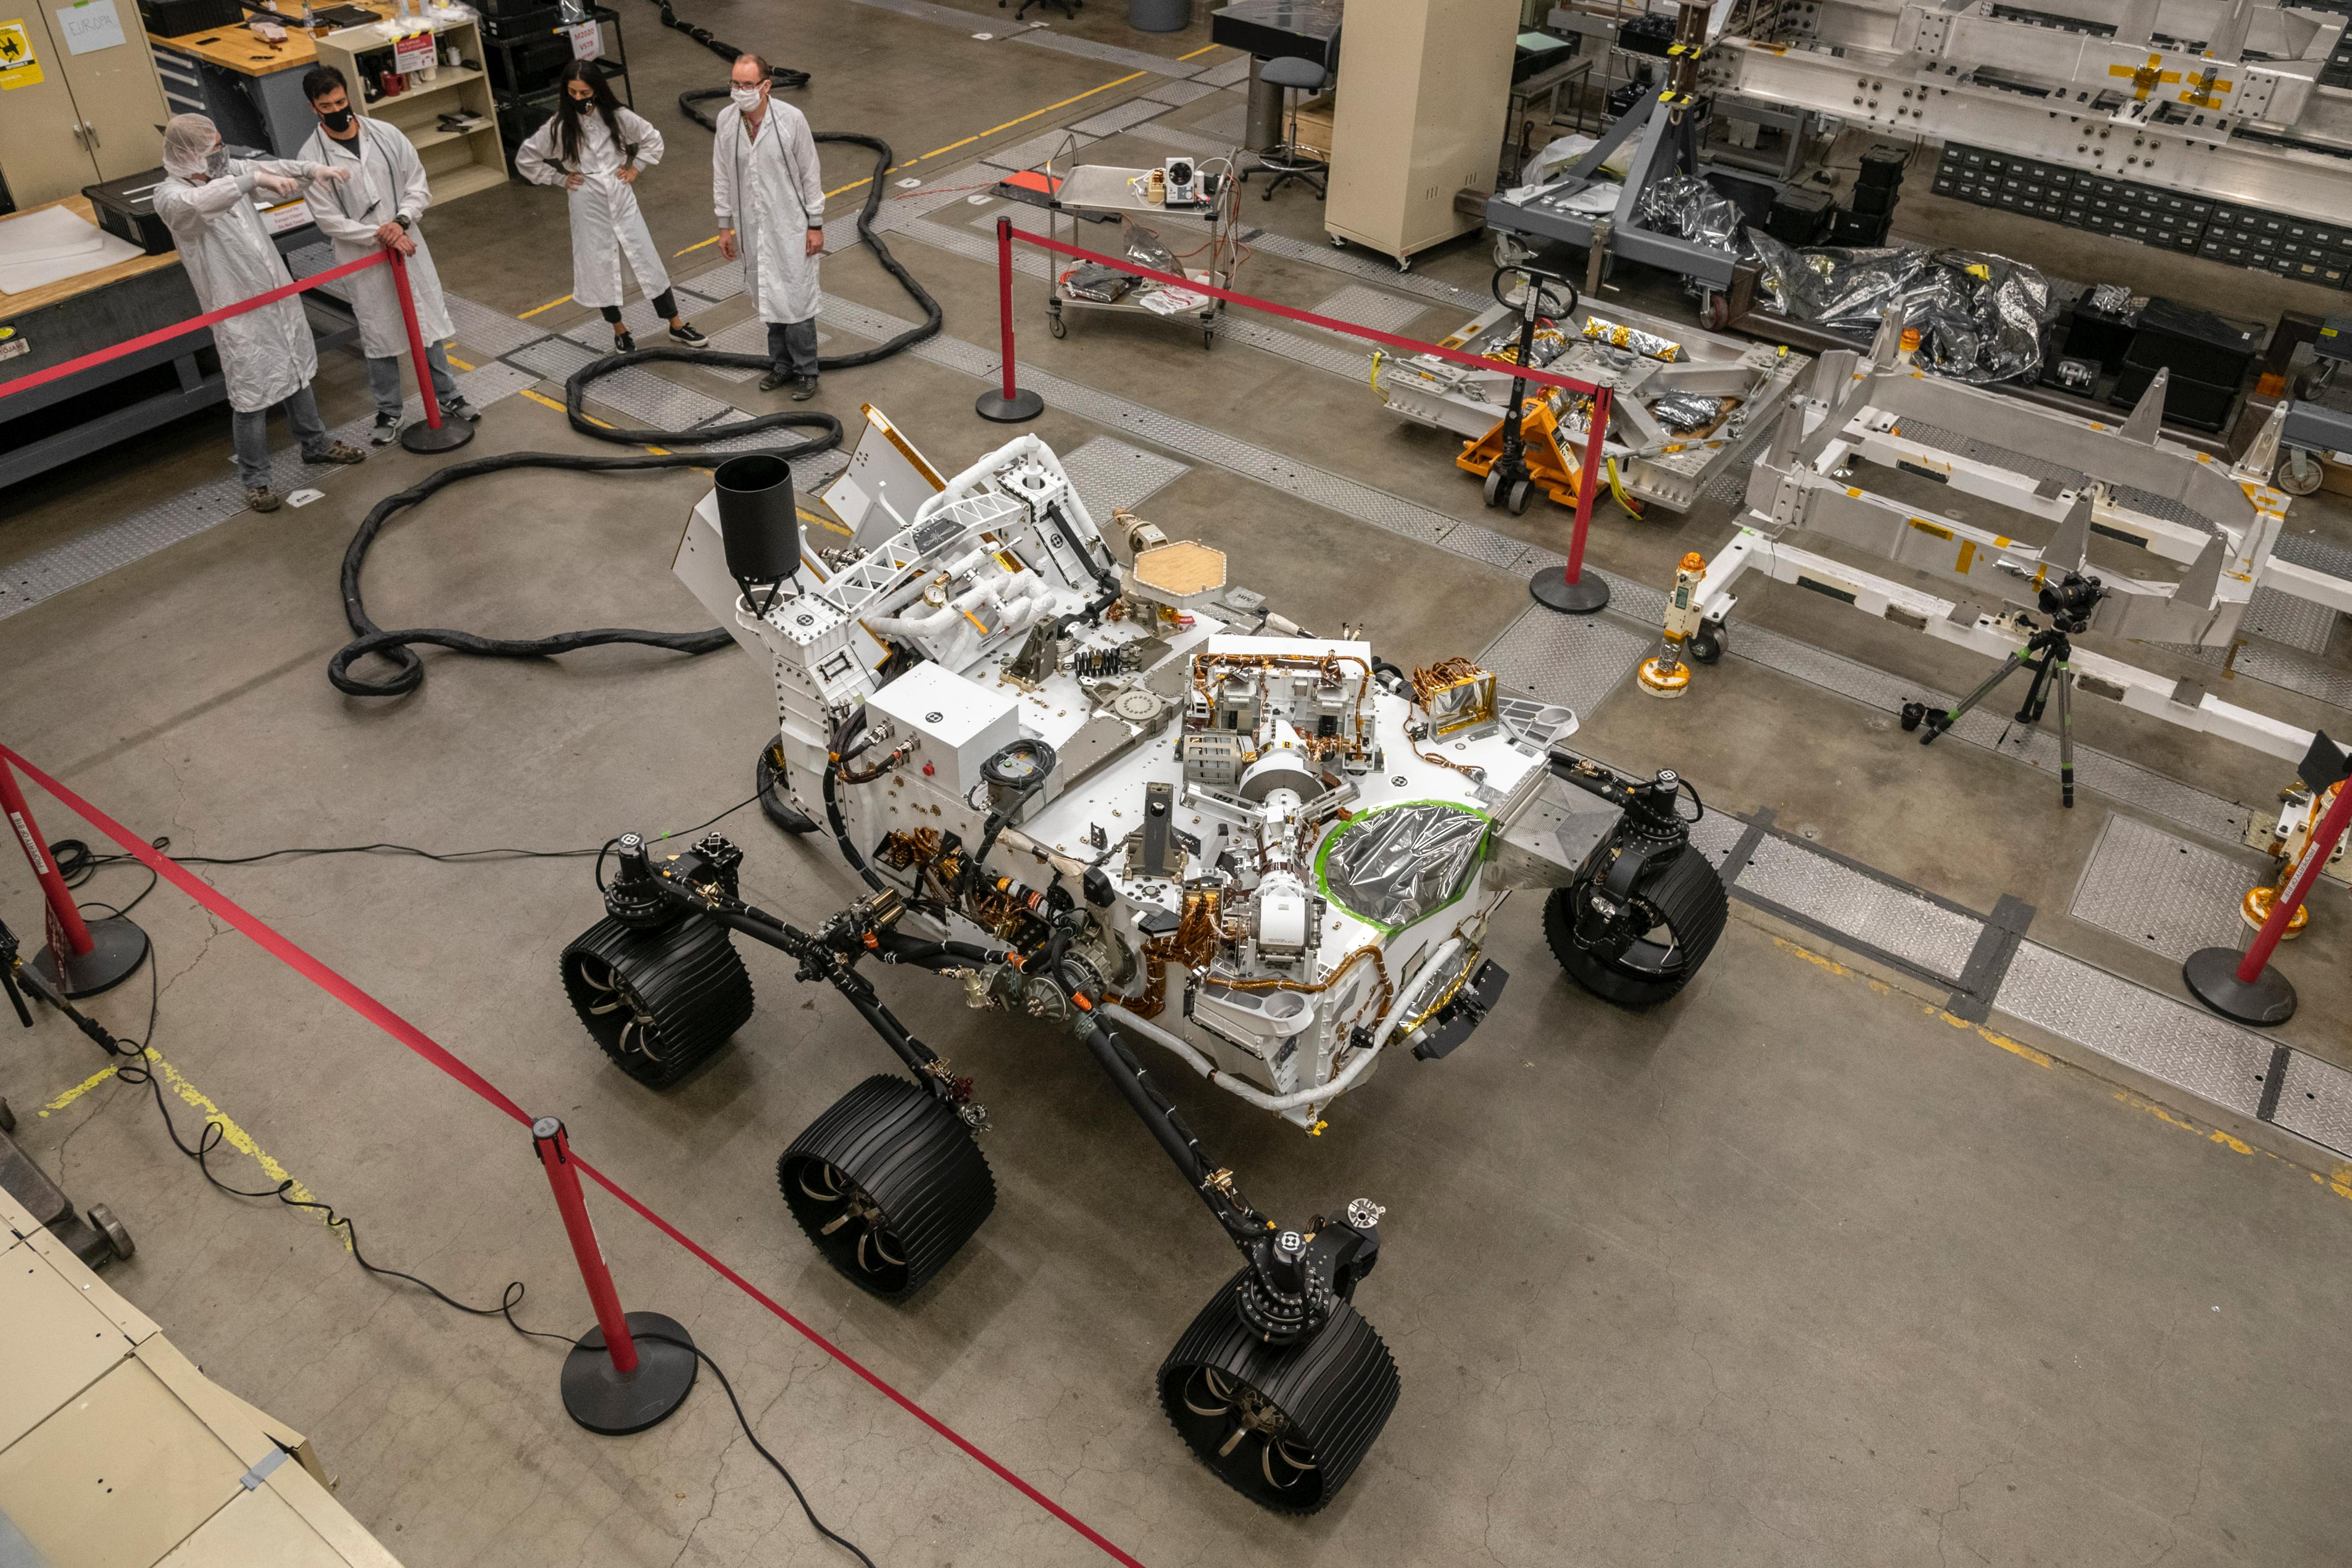 Engineers test drive the Earth-bound twin of NASAs Perseverance Mars rover for the first time in a warehouselike assembly room at the agencys Jet Propulsion Laboratory in Southern California.